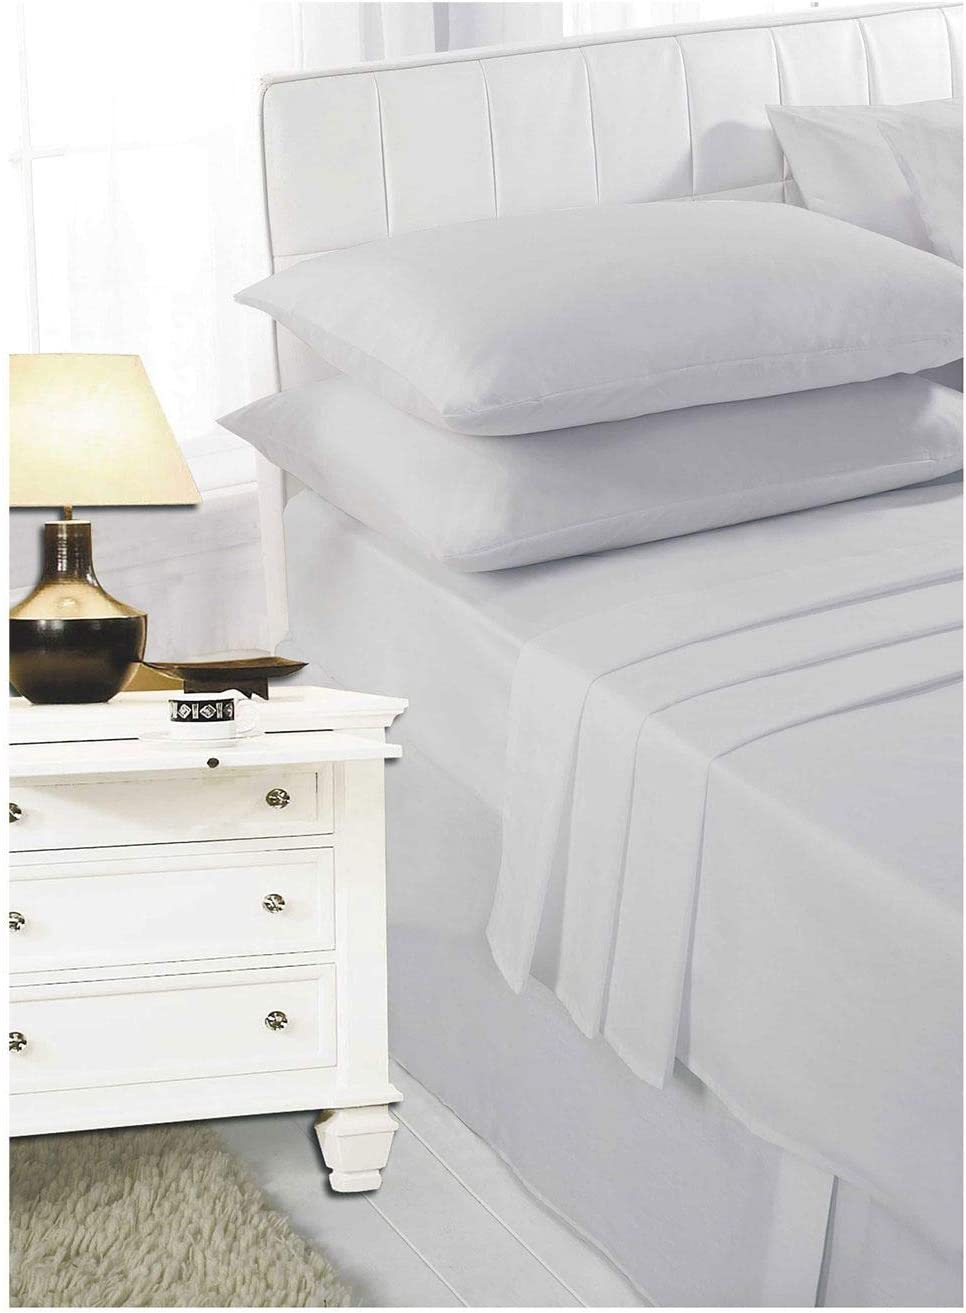 40cm Fitted Sheet Easy Care Poly Cotton Bed Sheets Single Double King Super King